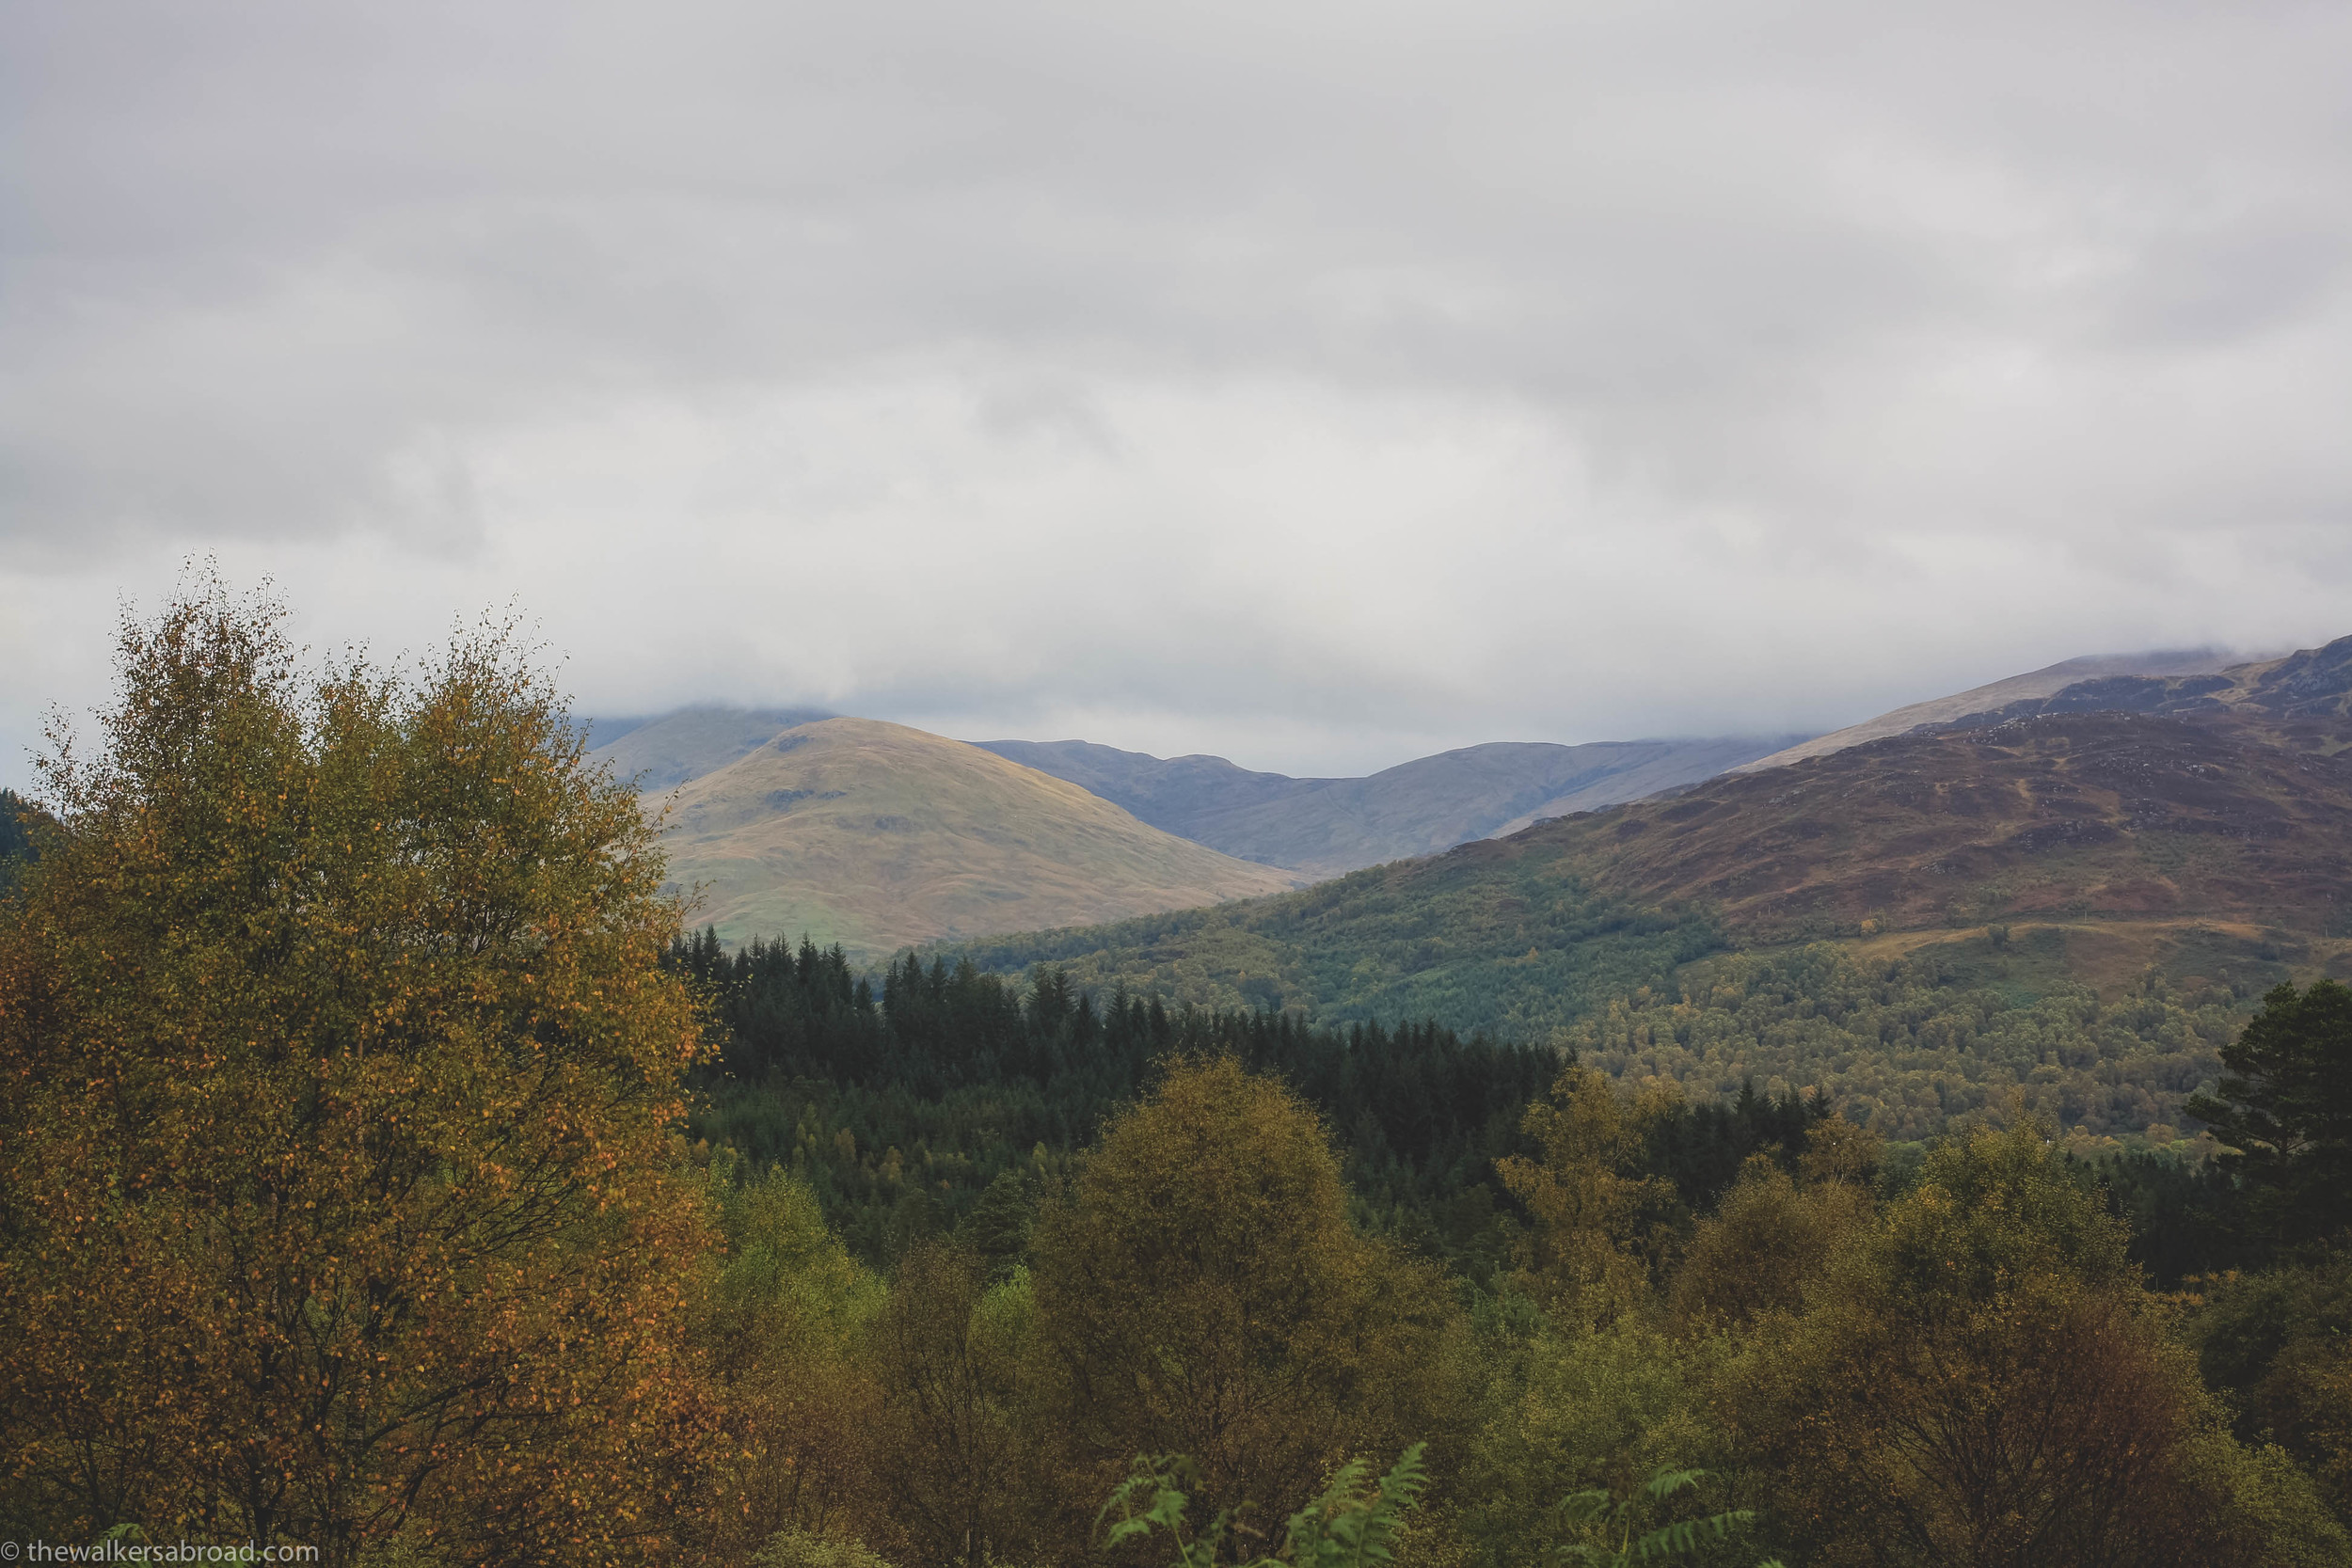 Views from a lookout in the Trossachs. (Possibly on the Duke's Pass again?)